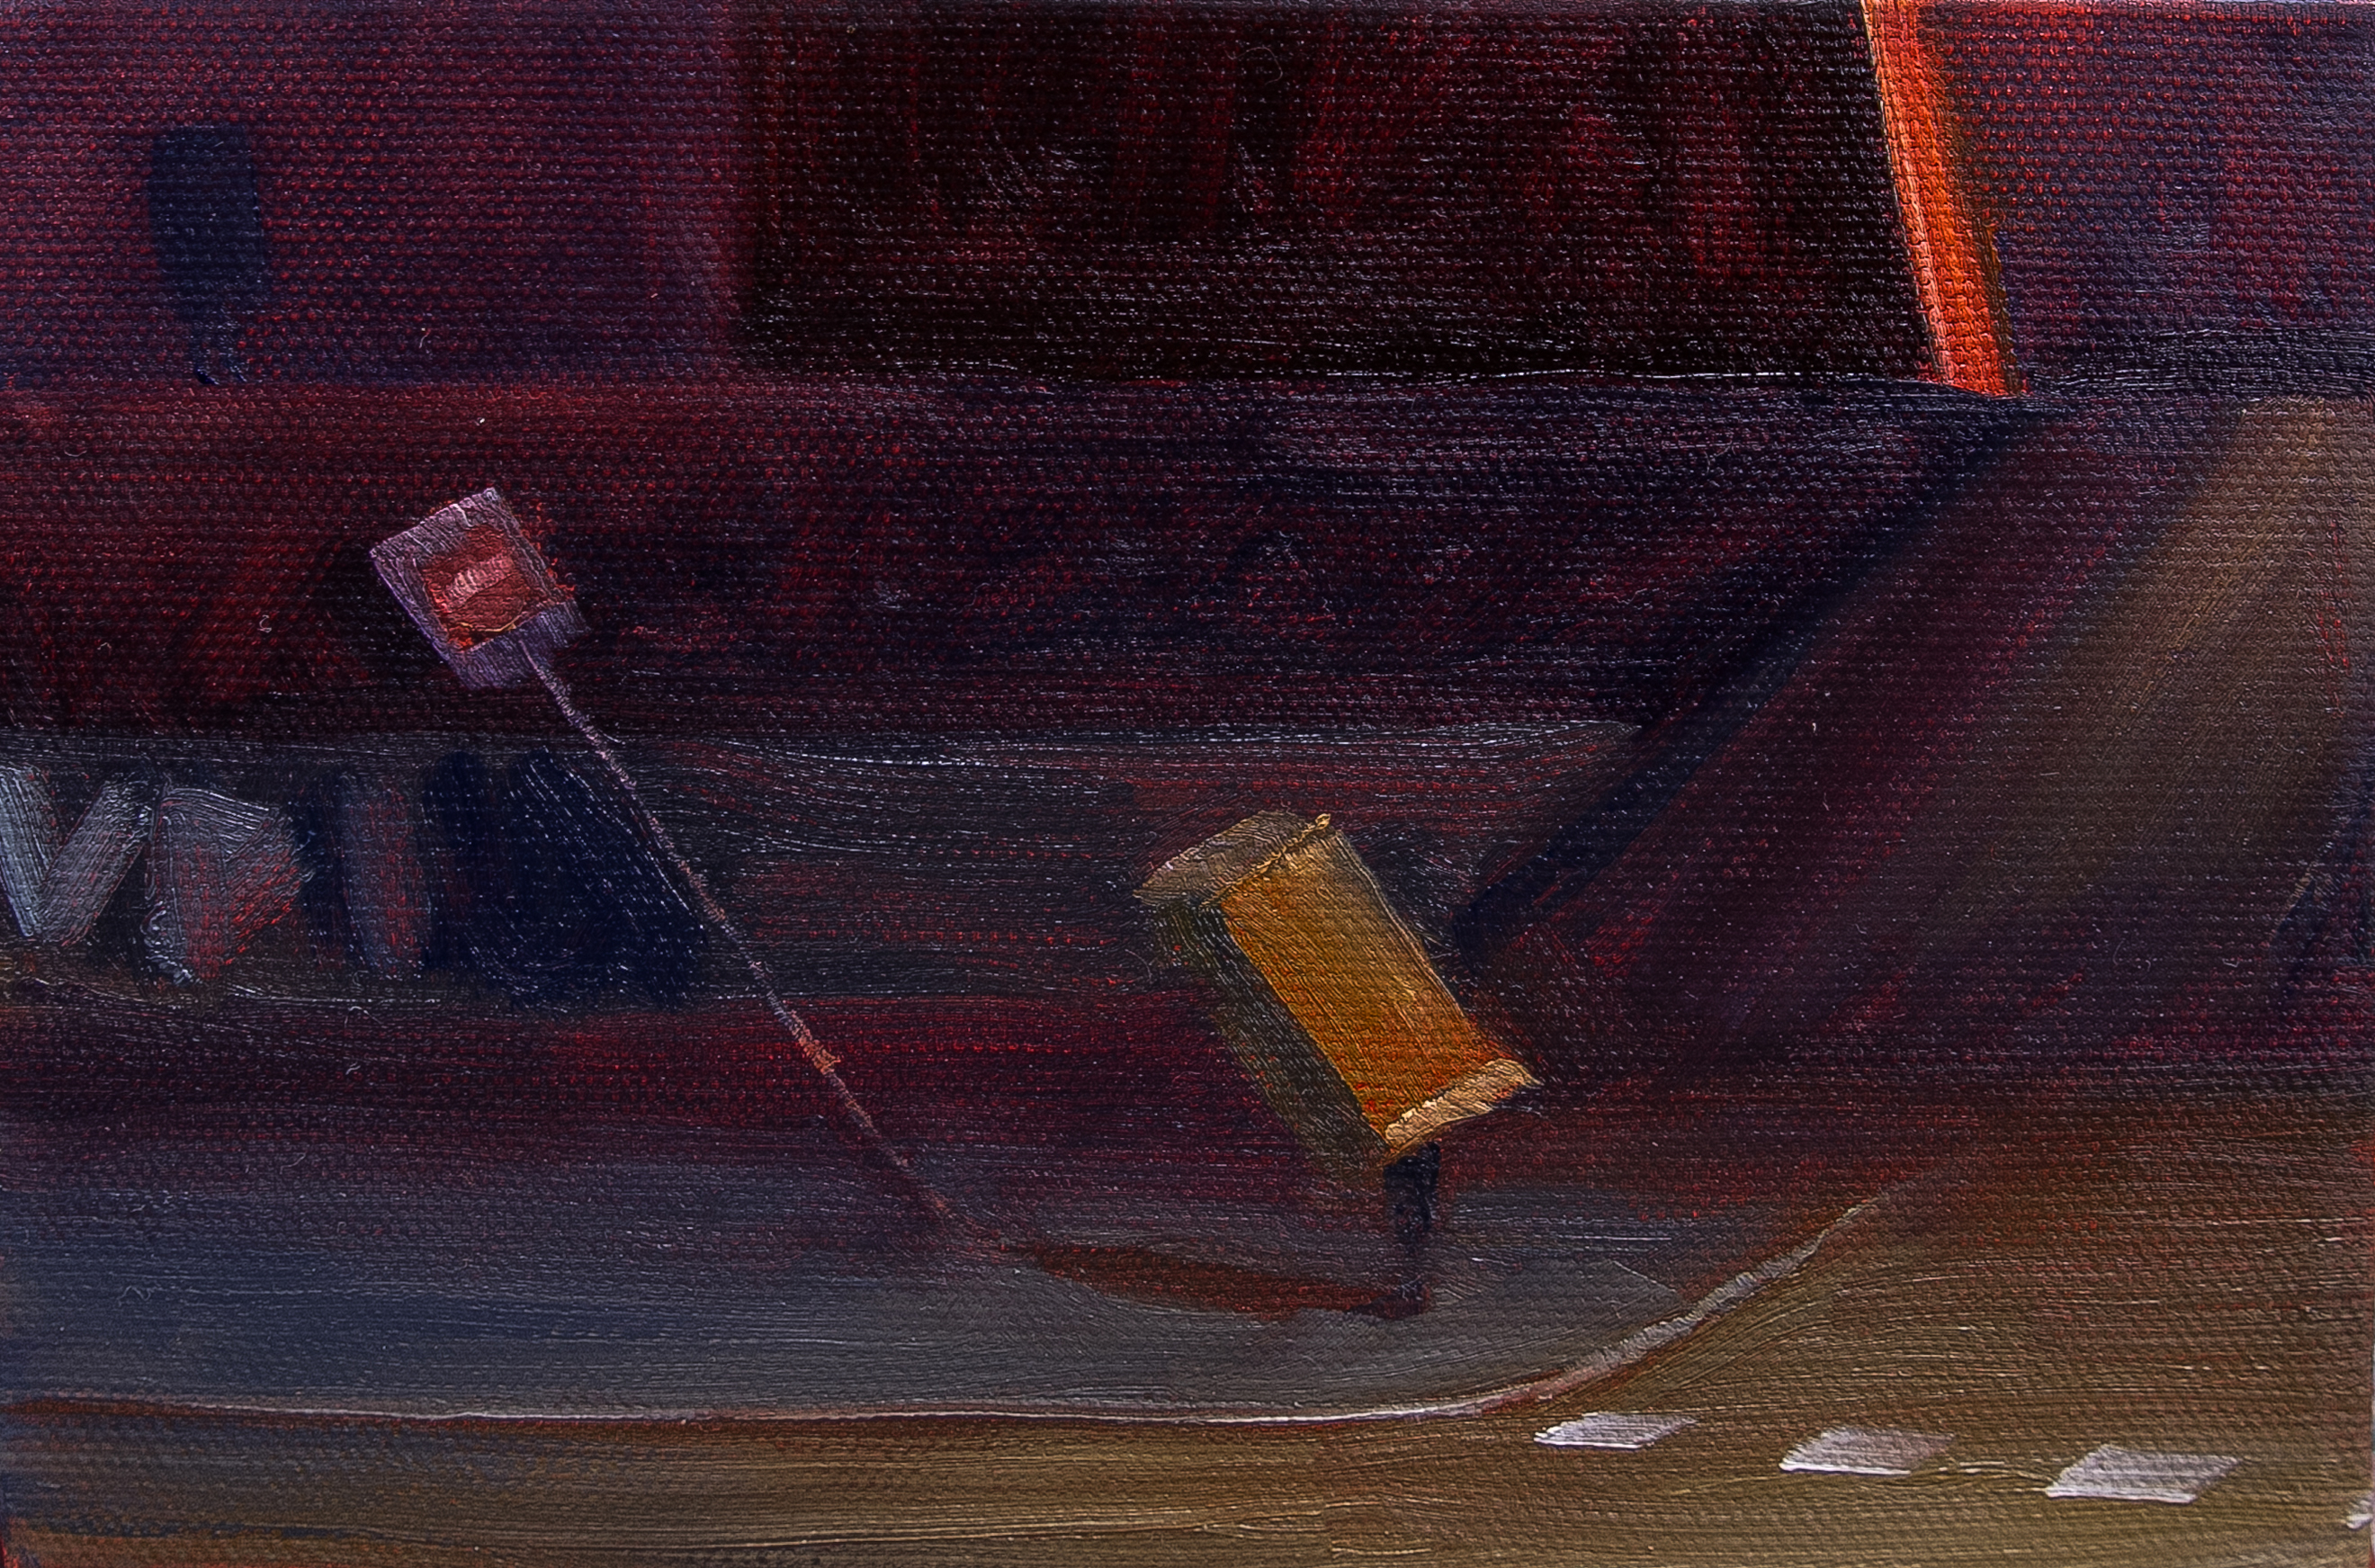 113-How Did I Get Here Oil on Canvas 12.5x18cm 2015